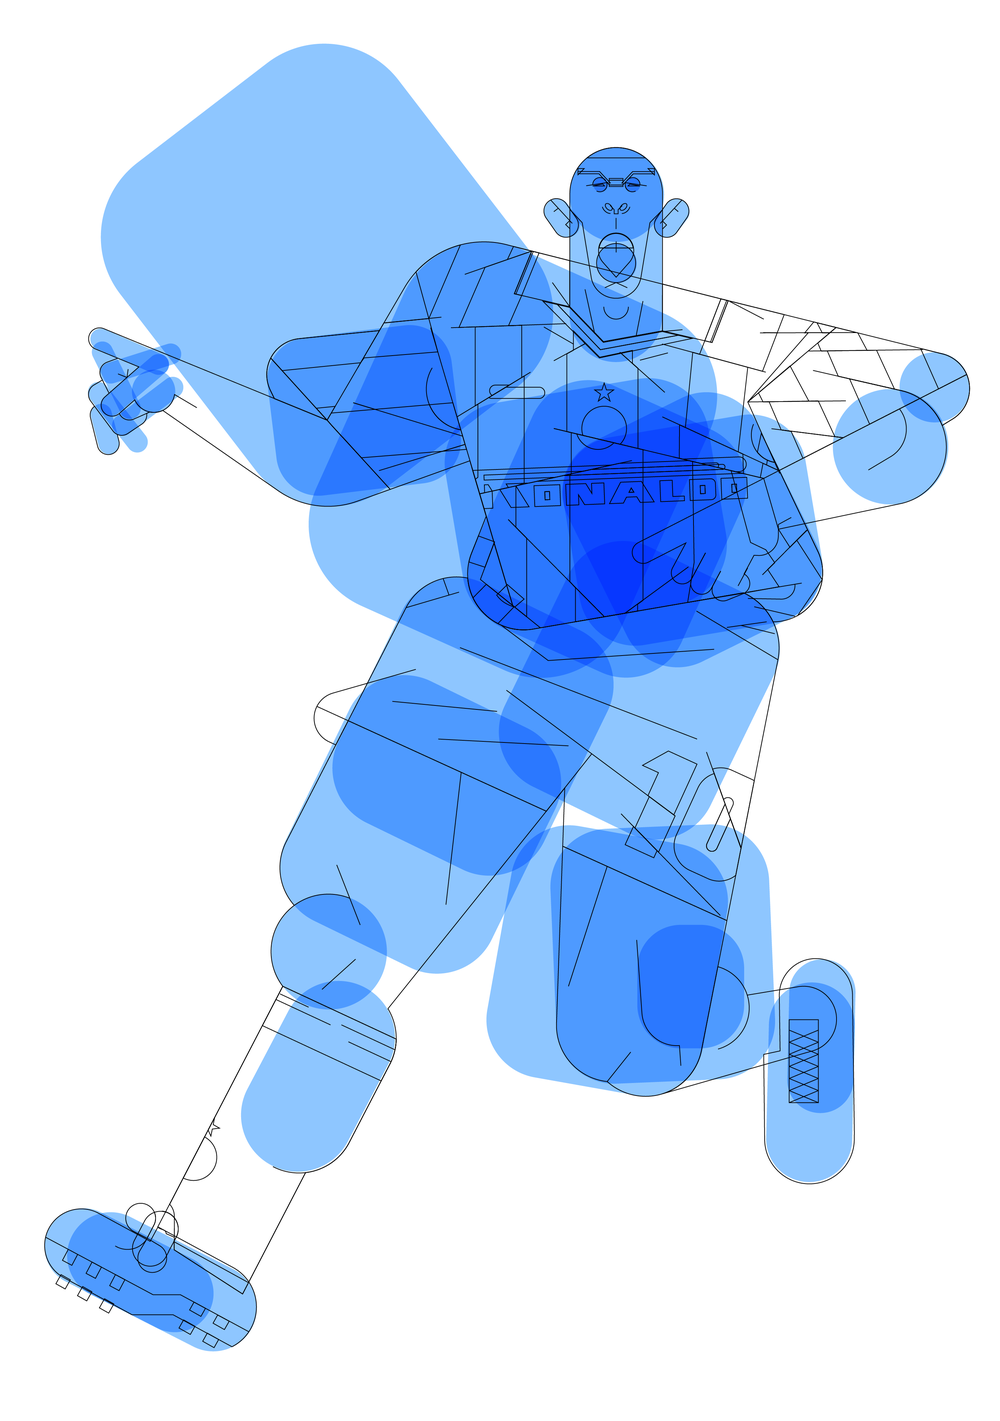 Football Players_Ronaldo 9 studies_wireframes.png